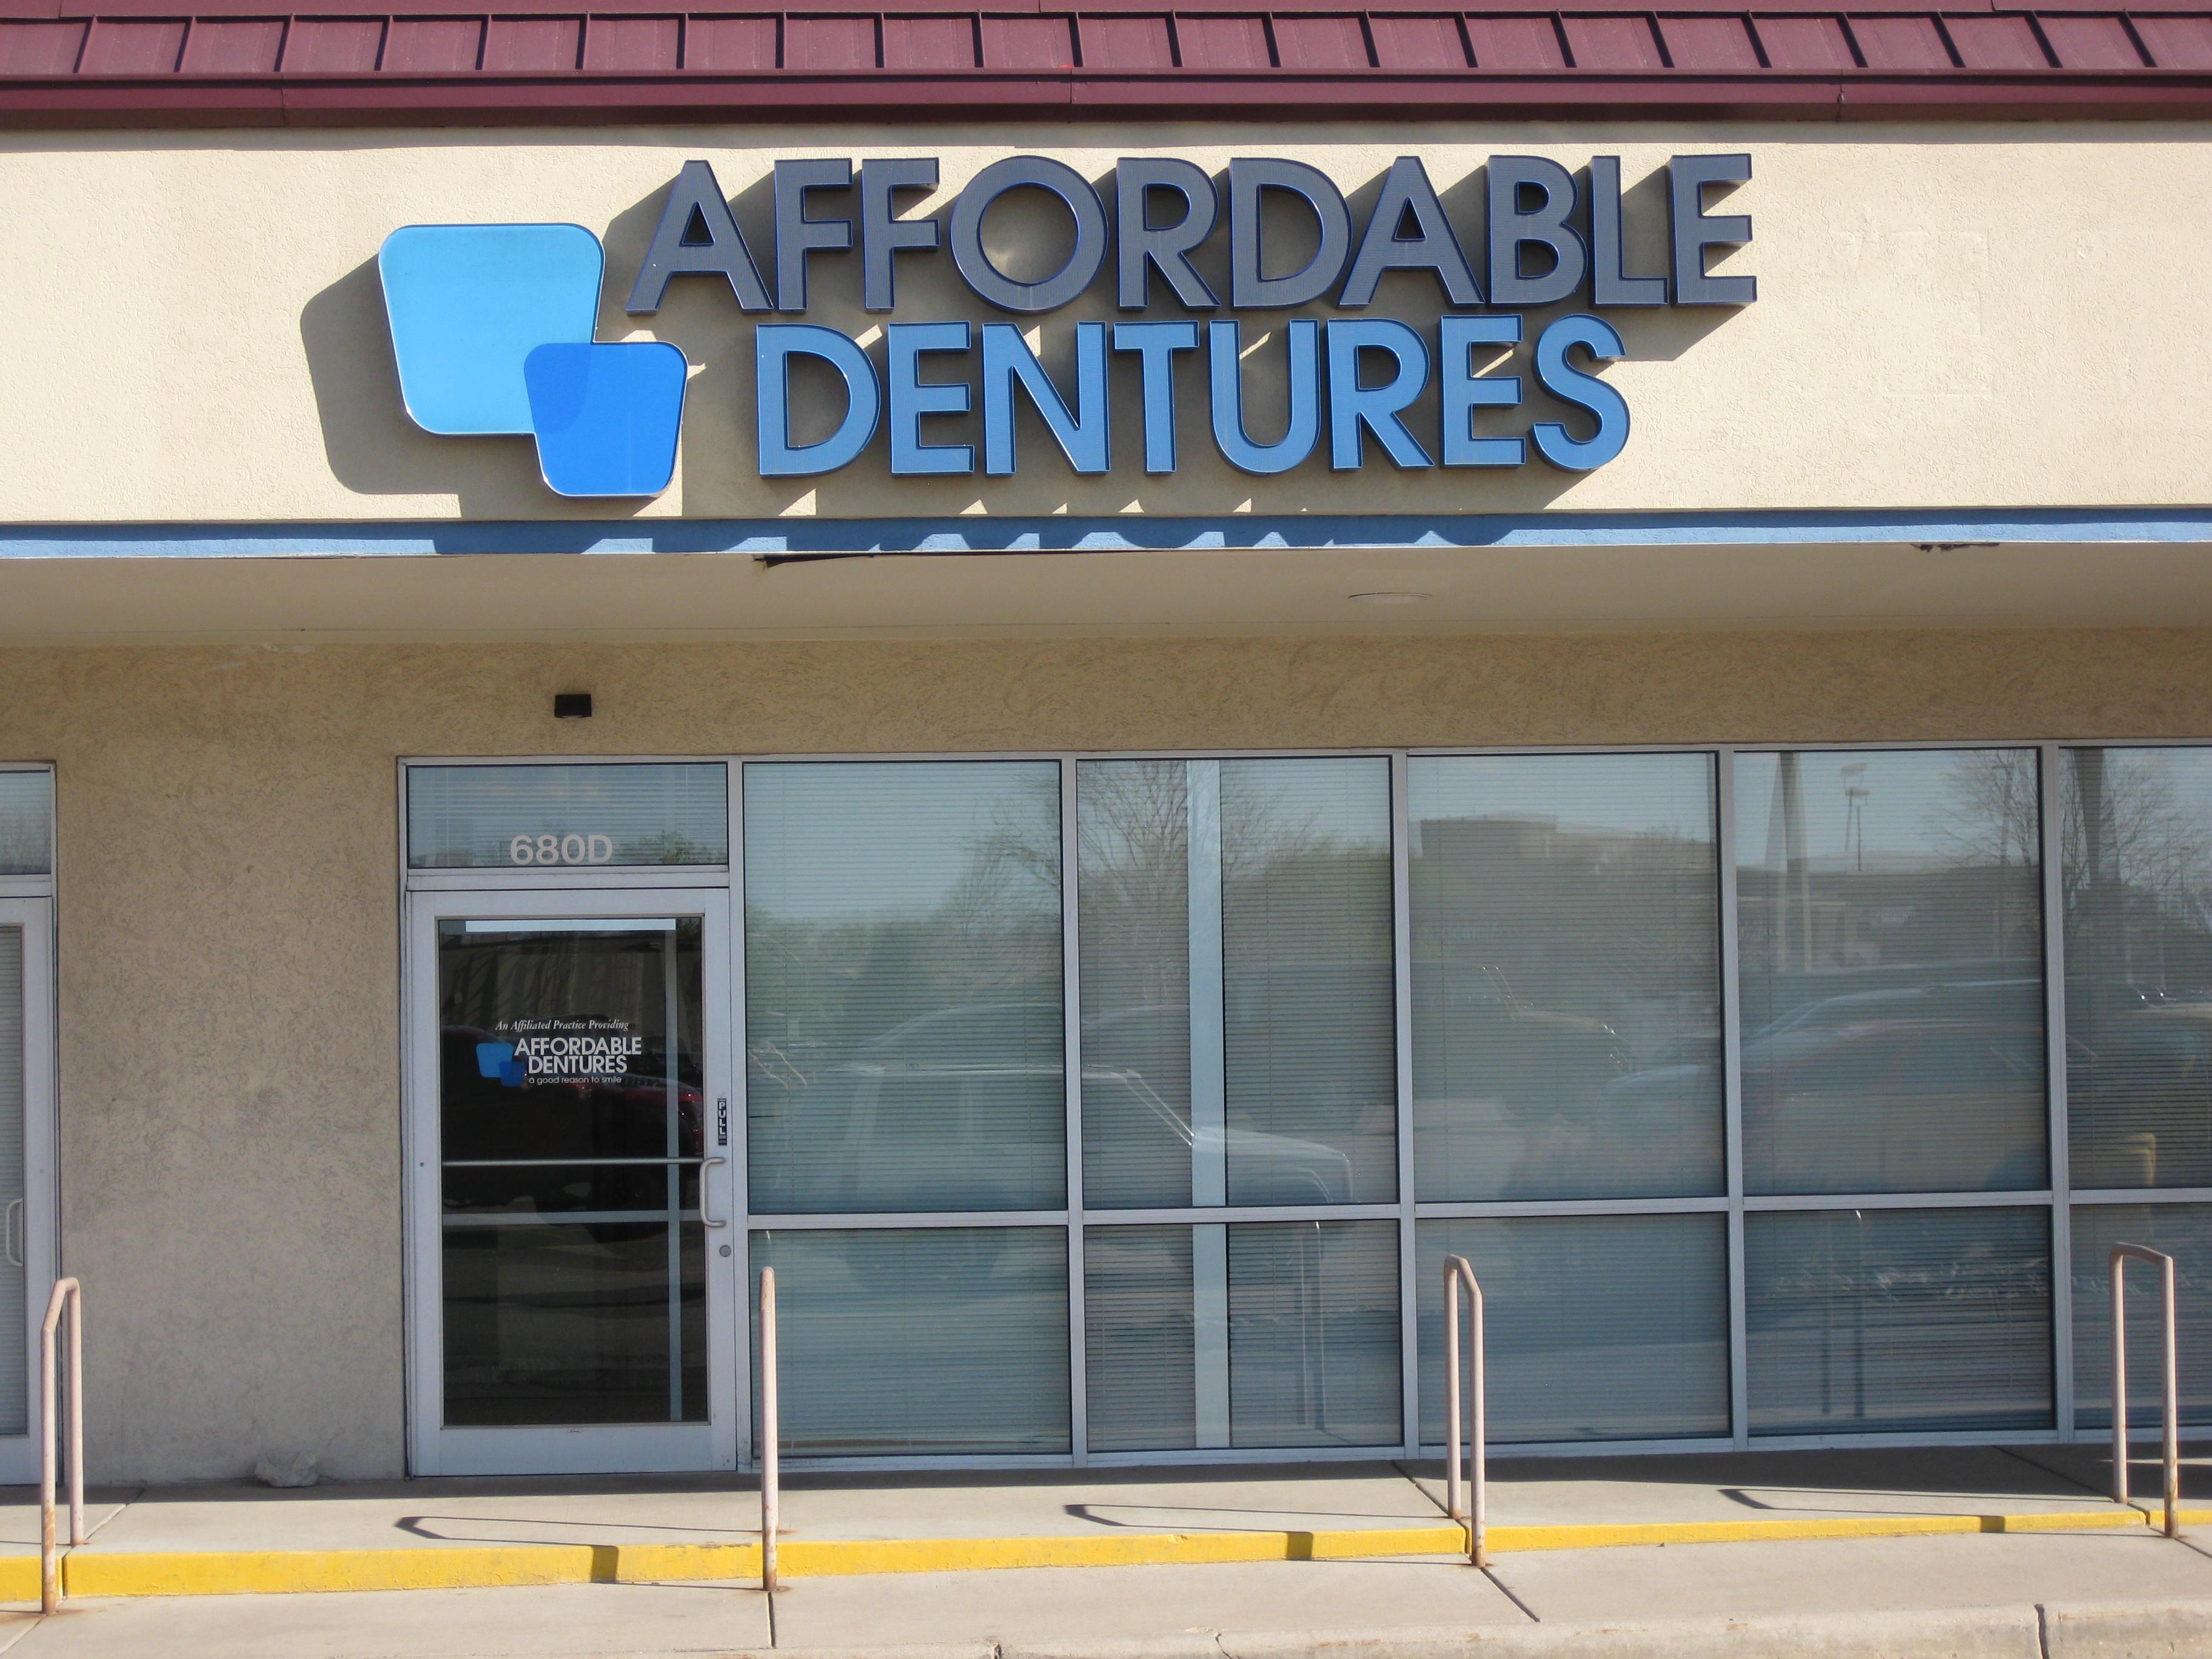 Affordable Dentures Coupons near me in Northglenn | 8coupons